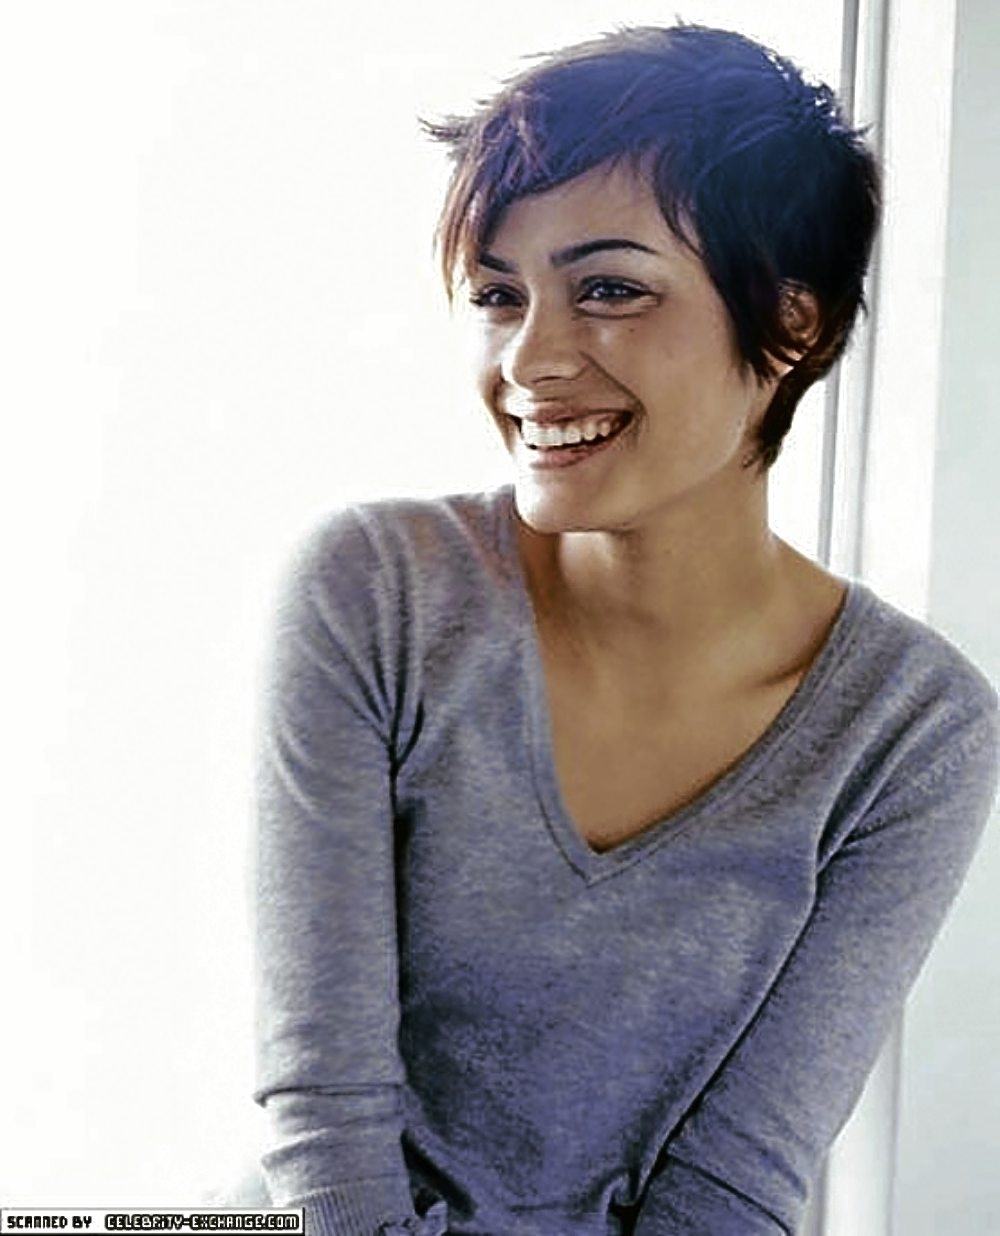 Pixie Haircut For Thick Curly Hair 1000+ Images About Pixie Cut On Intended For Most Recently Pixie Hairstyles For Thick Coarse Hair (View 10 of 16)